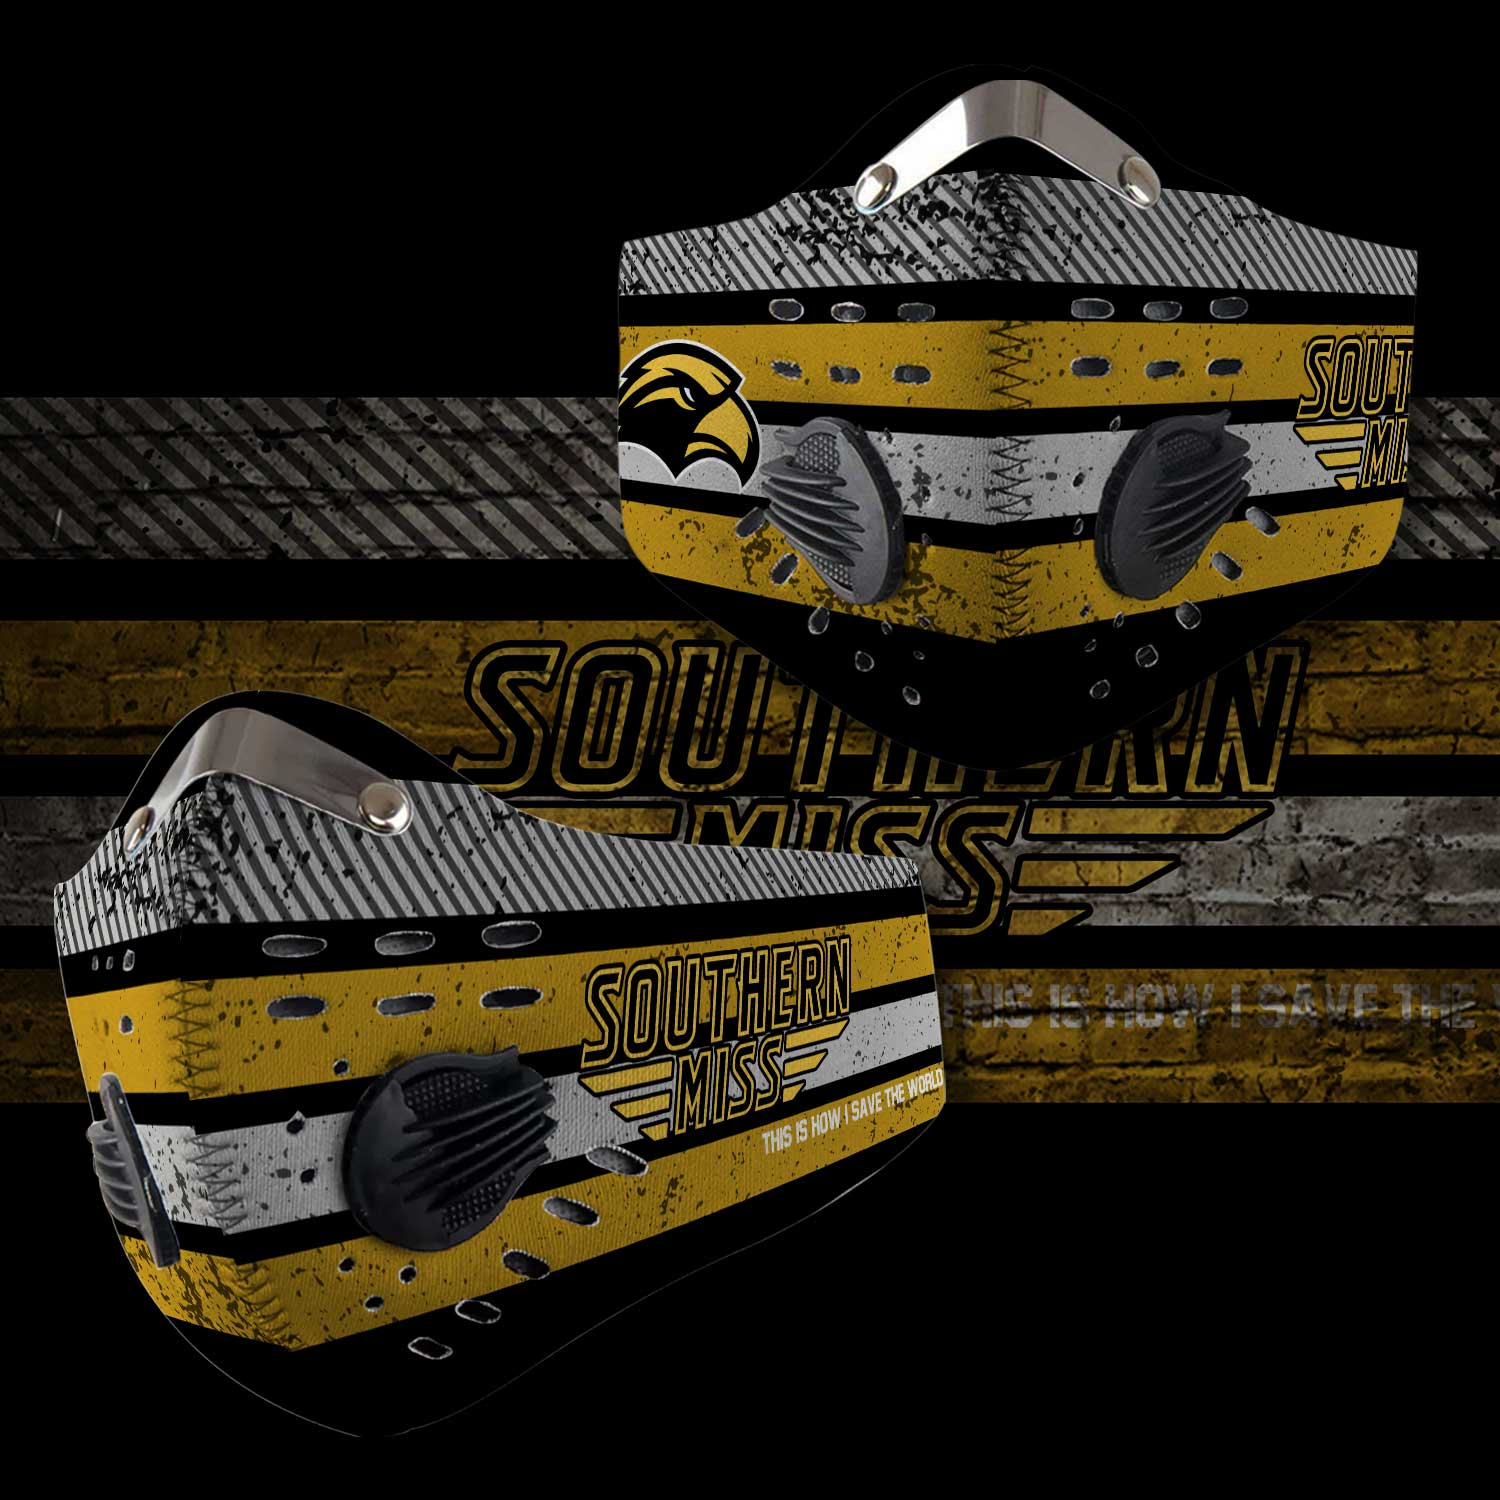 Southern miss golden eagles this is how i save the world face mask 2